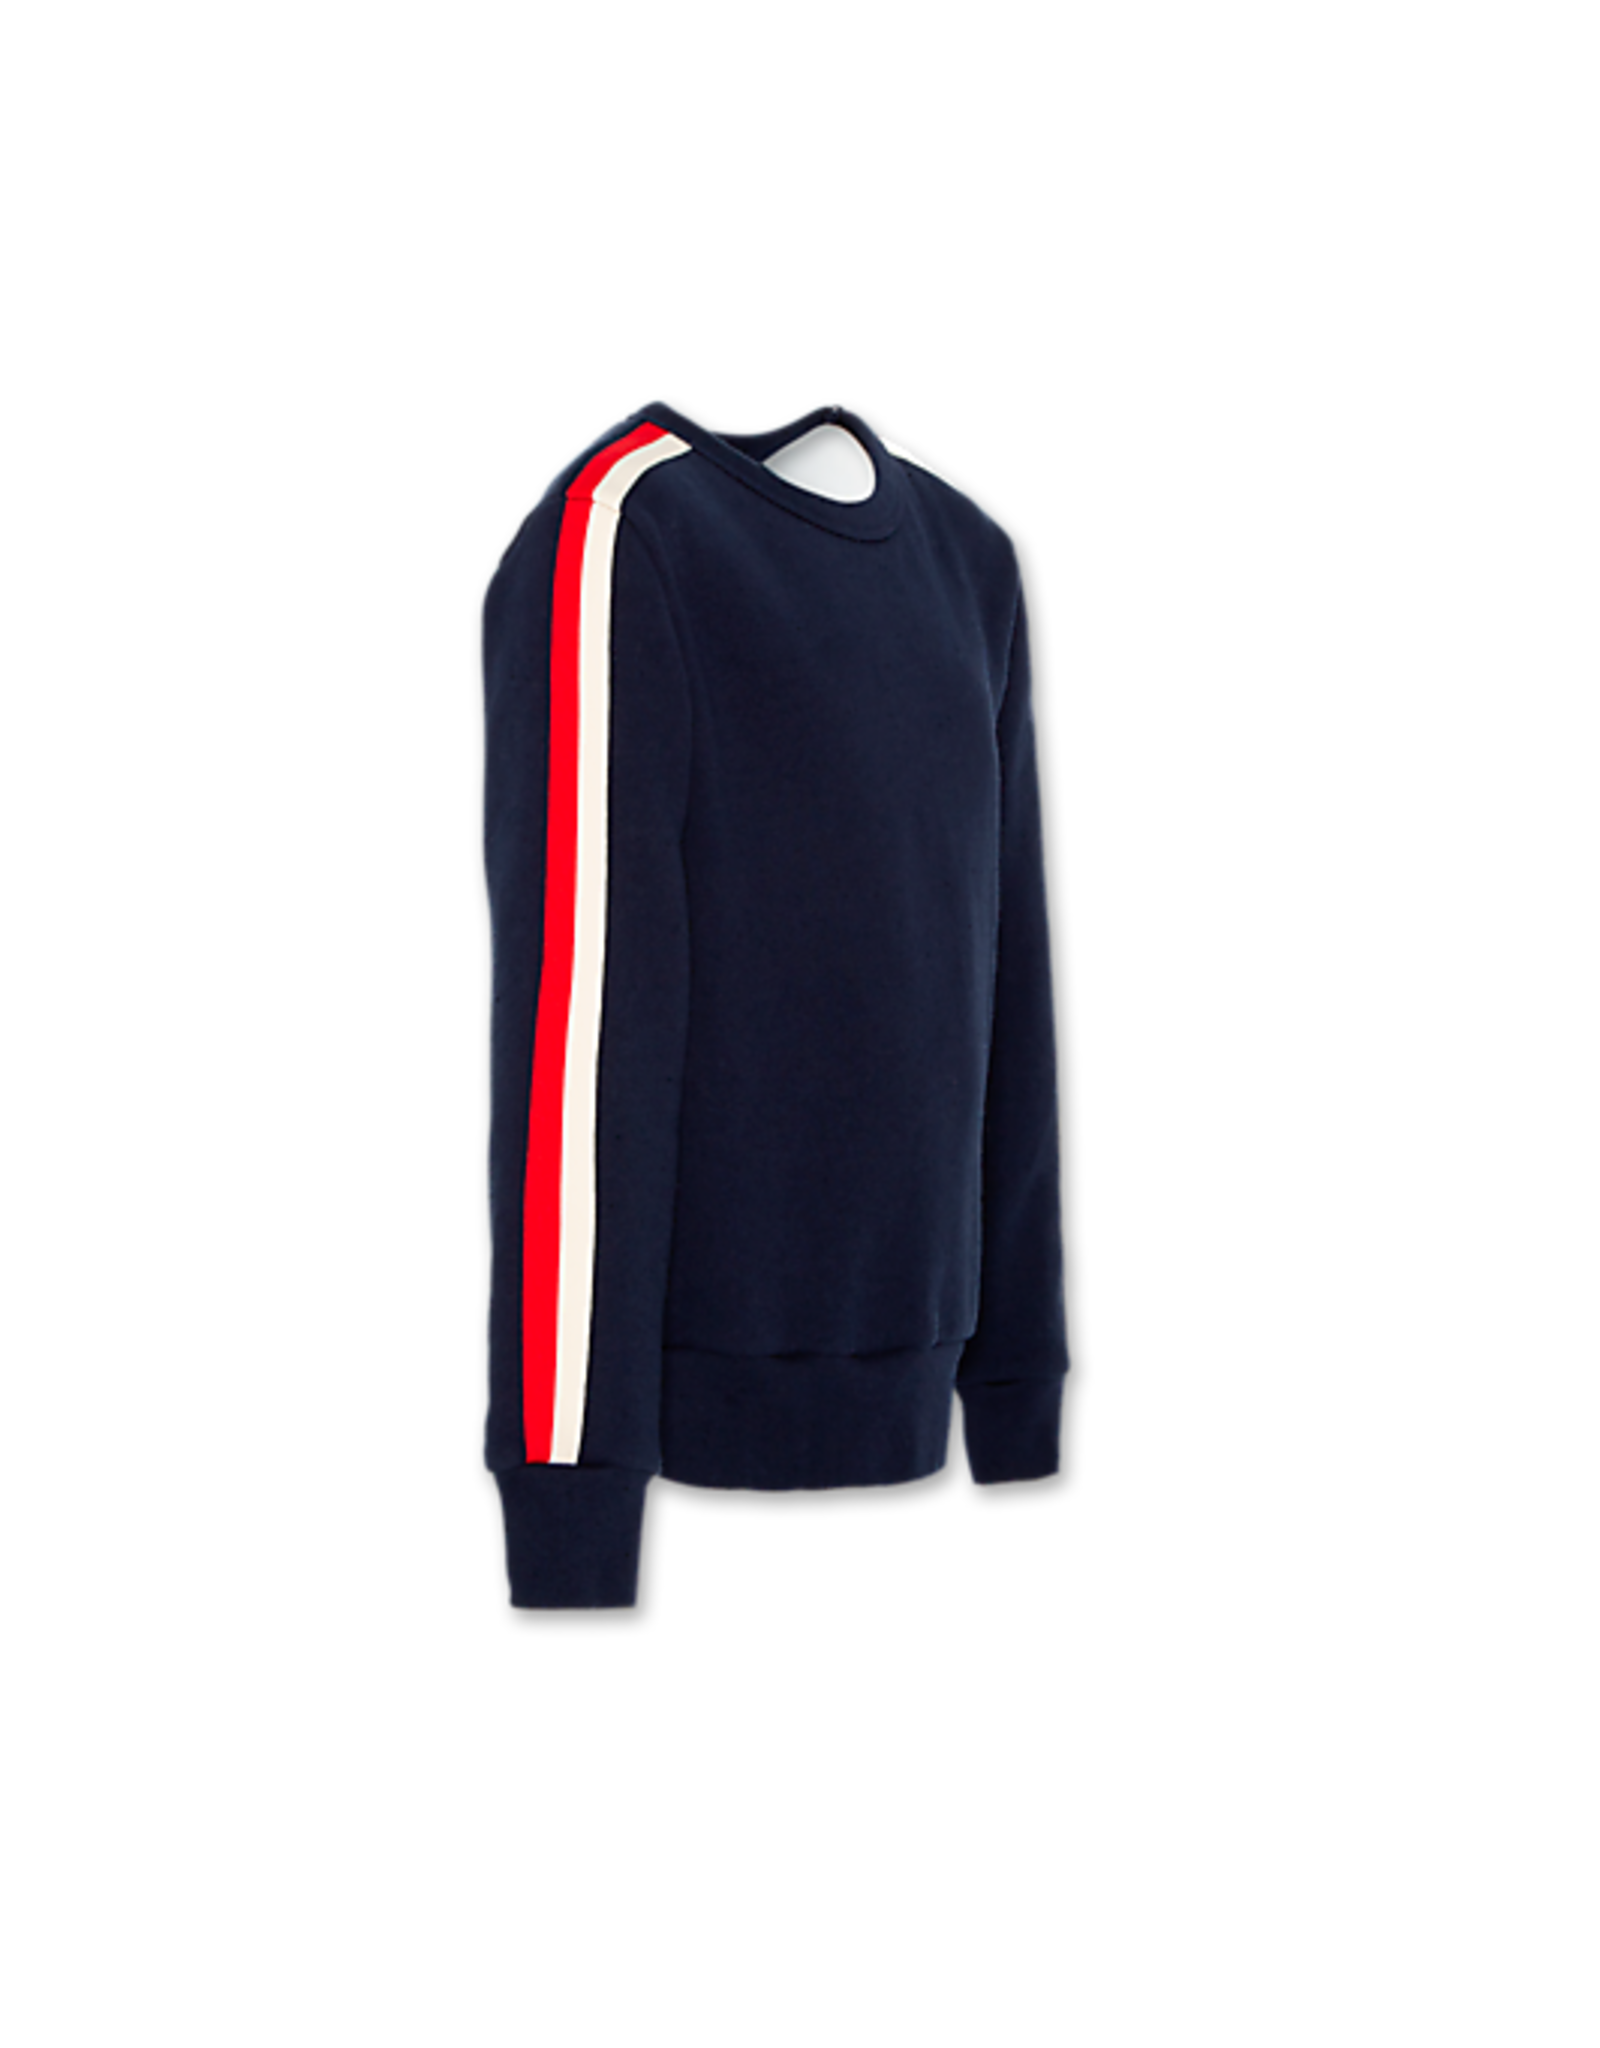 American Outfitters AO sweater donkerblauw met rode streep